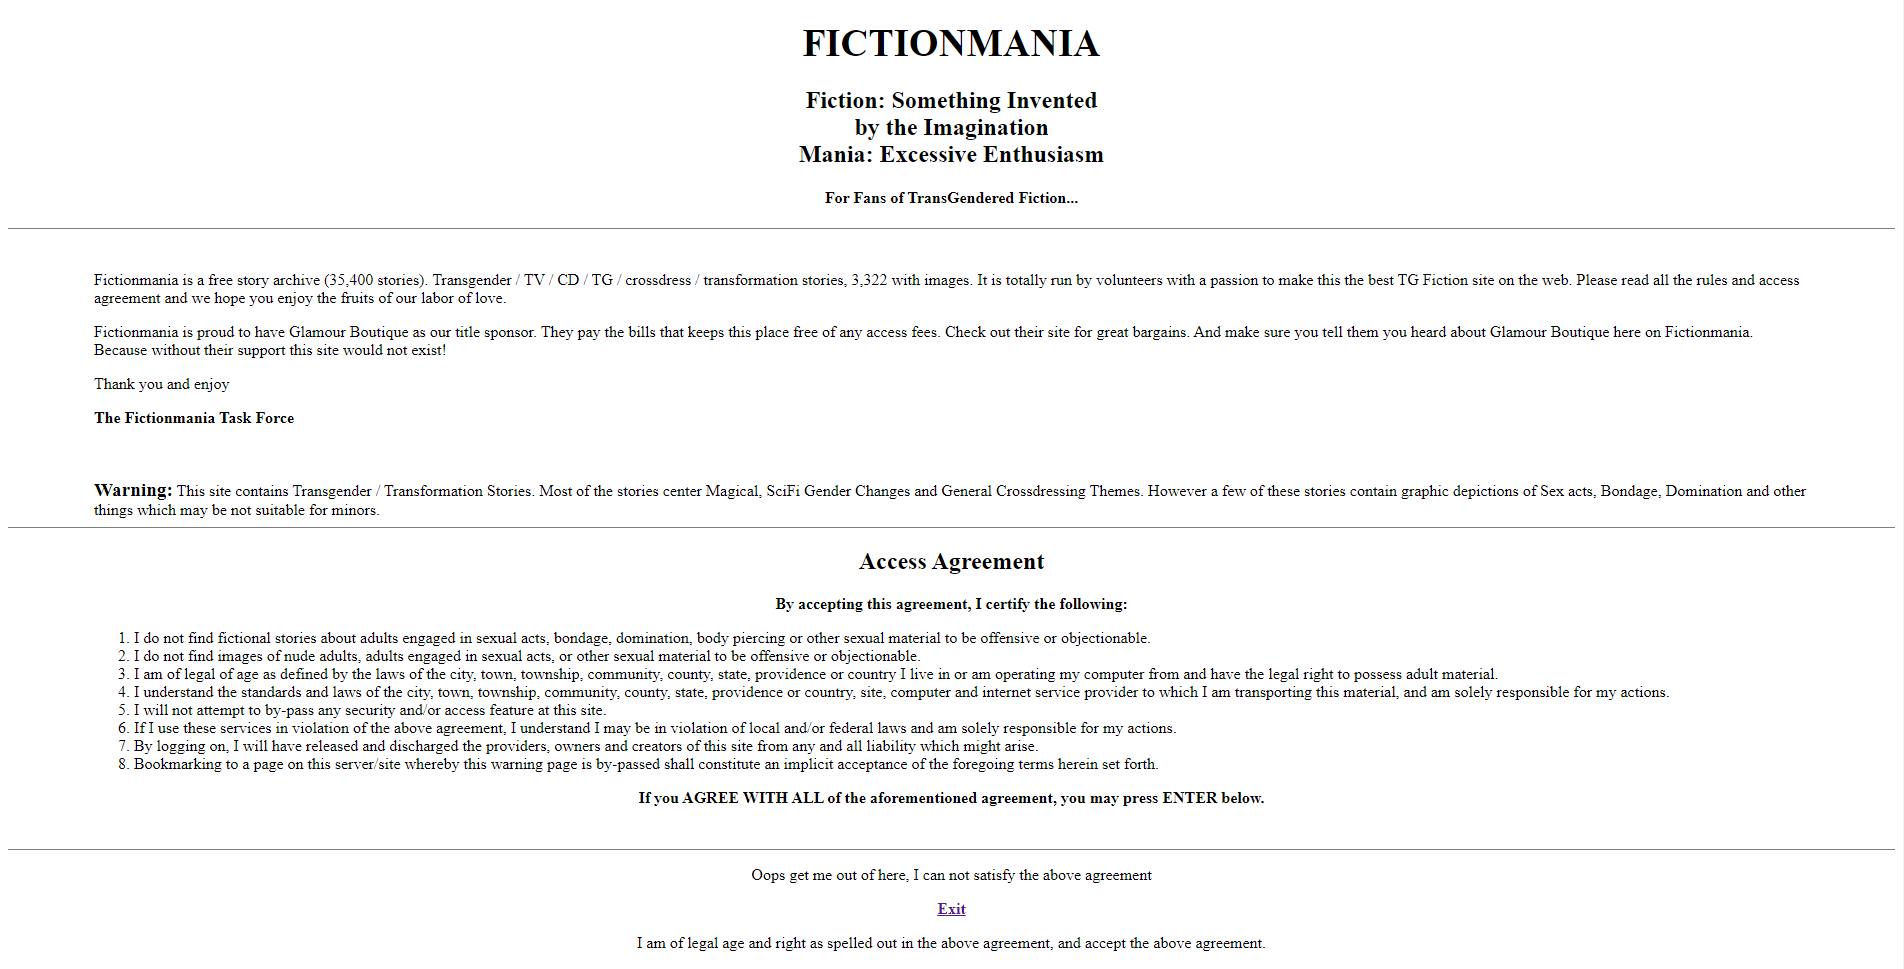 FictionMania